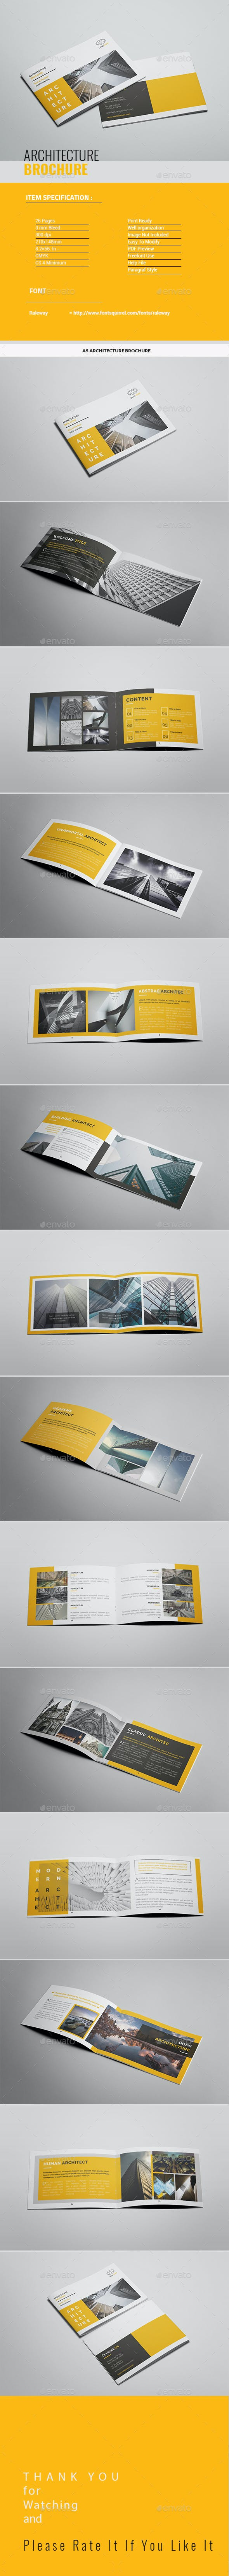 a5 architecture brochure by tripleef graphicriver